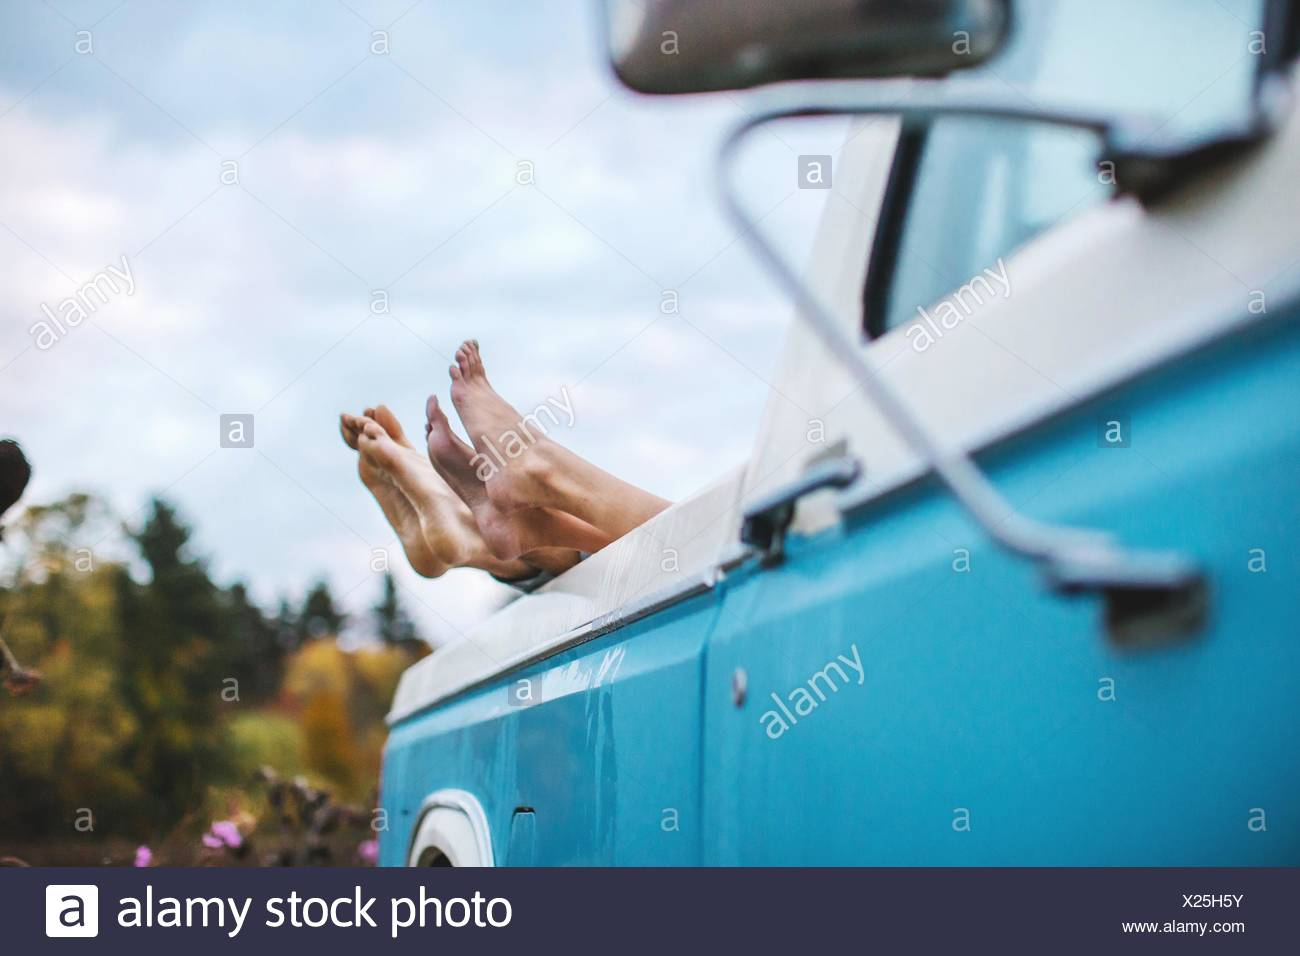 Young couple lying in back of truck, bare feet on edge of truck, focus on feet - Stock Image